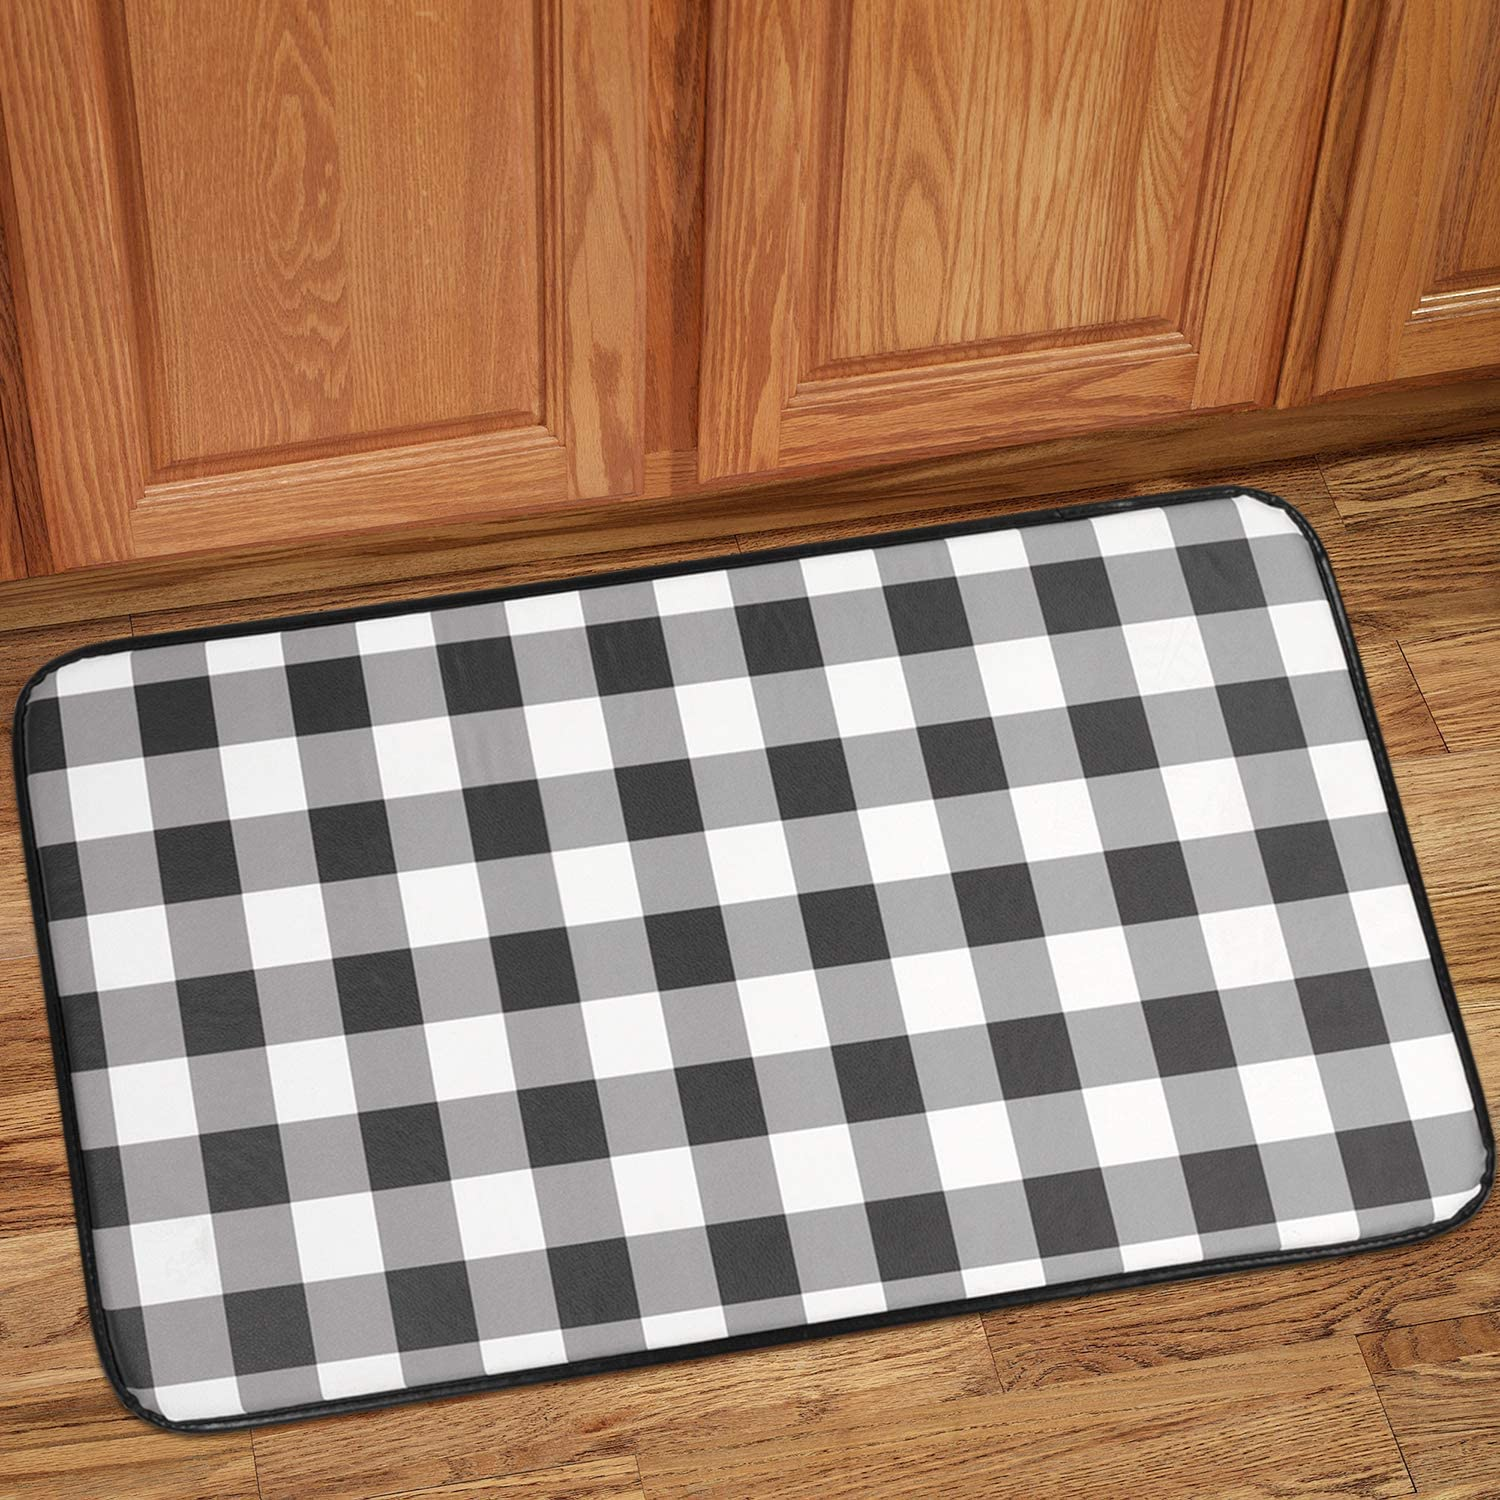 """Sweet Home Collection Kitchen Floor Mat Memory Foam Anti Fatigue Durable Non Skid Rug for Long Standing Comforter, 30"""" x 18"""", Buffalo Check Black/White"""